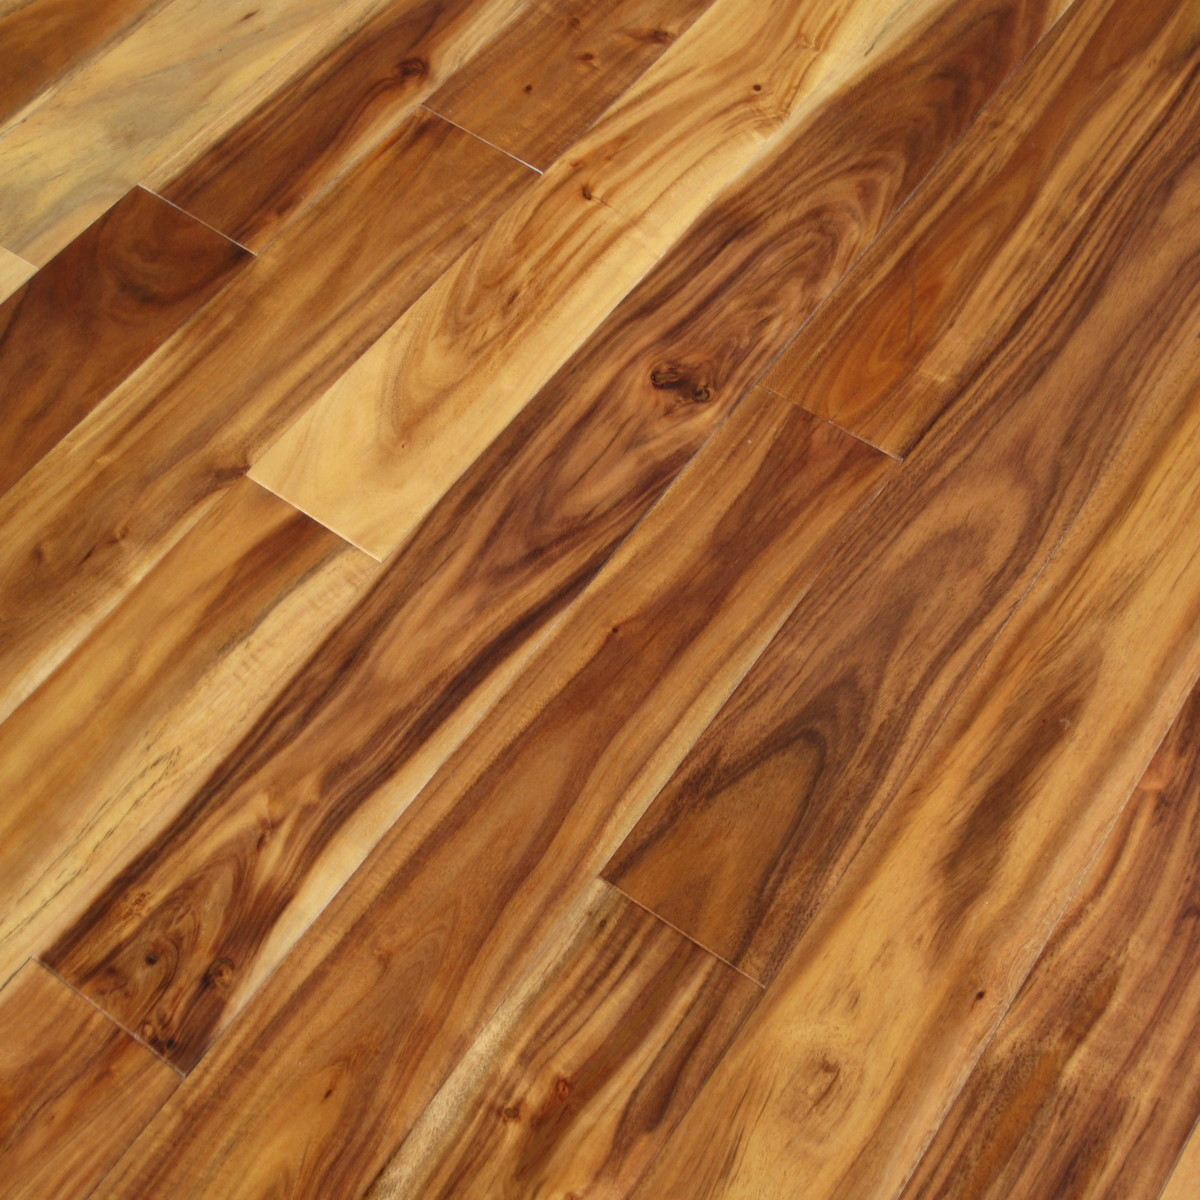 Acacia Natural Plank Hardwood Flooring Unique Wood Floors